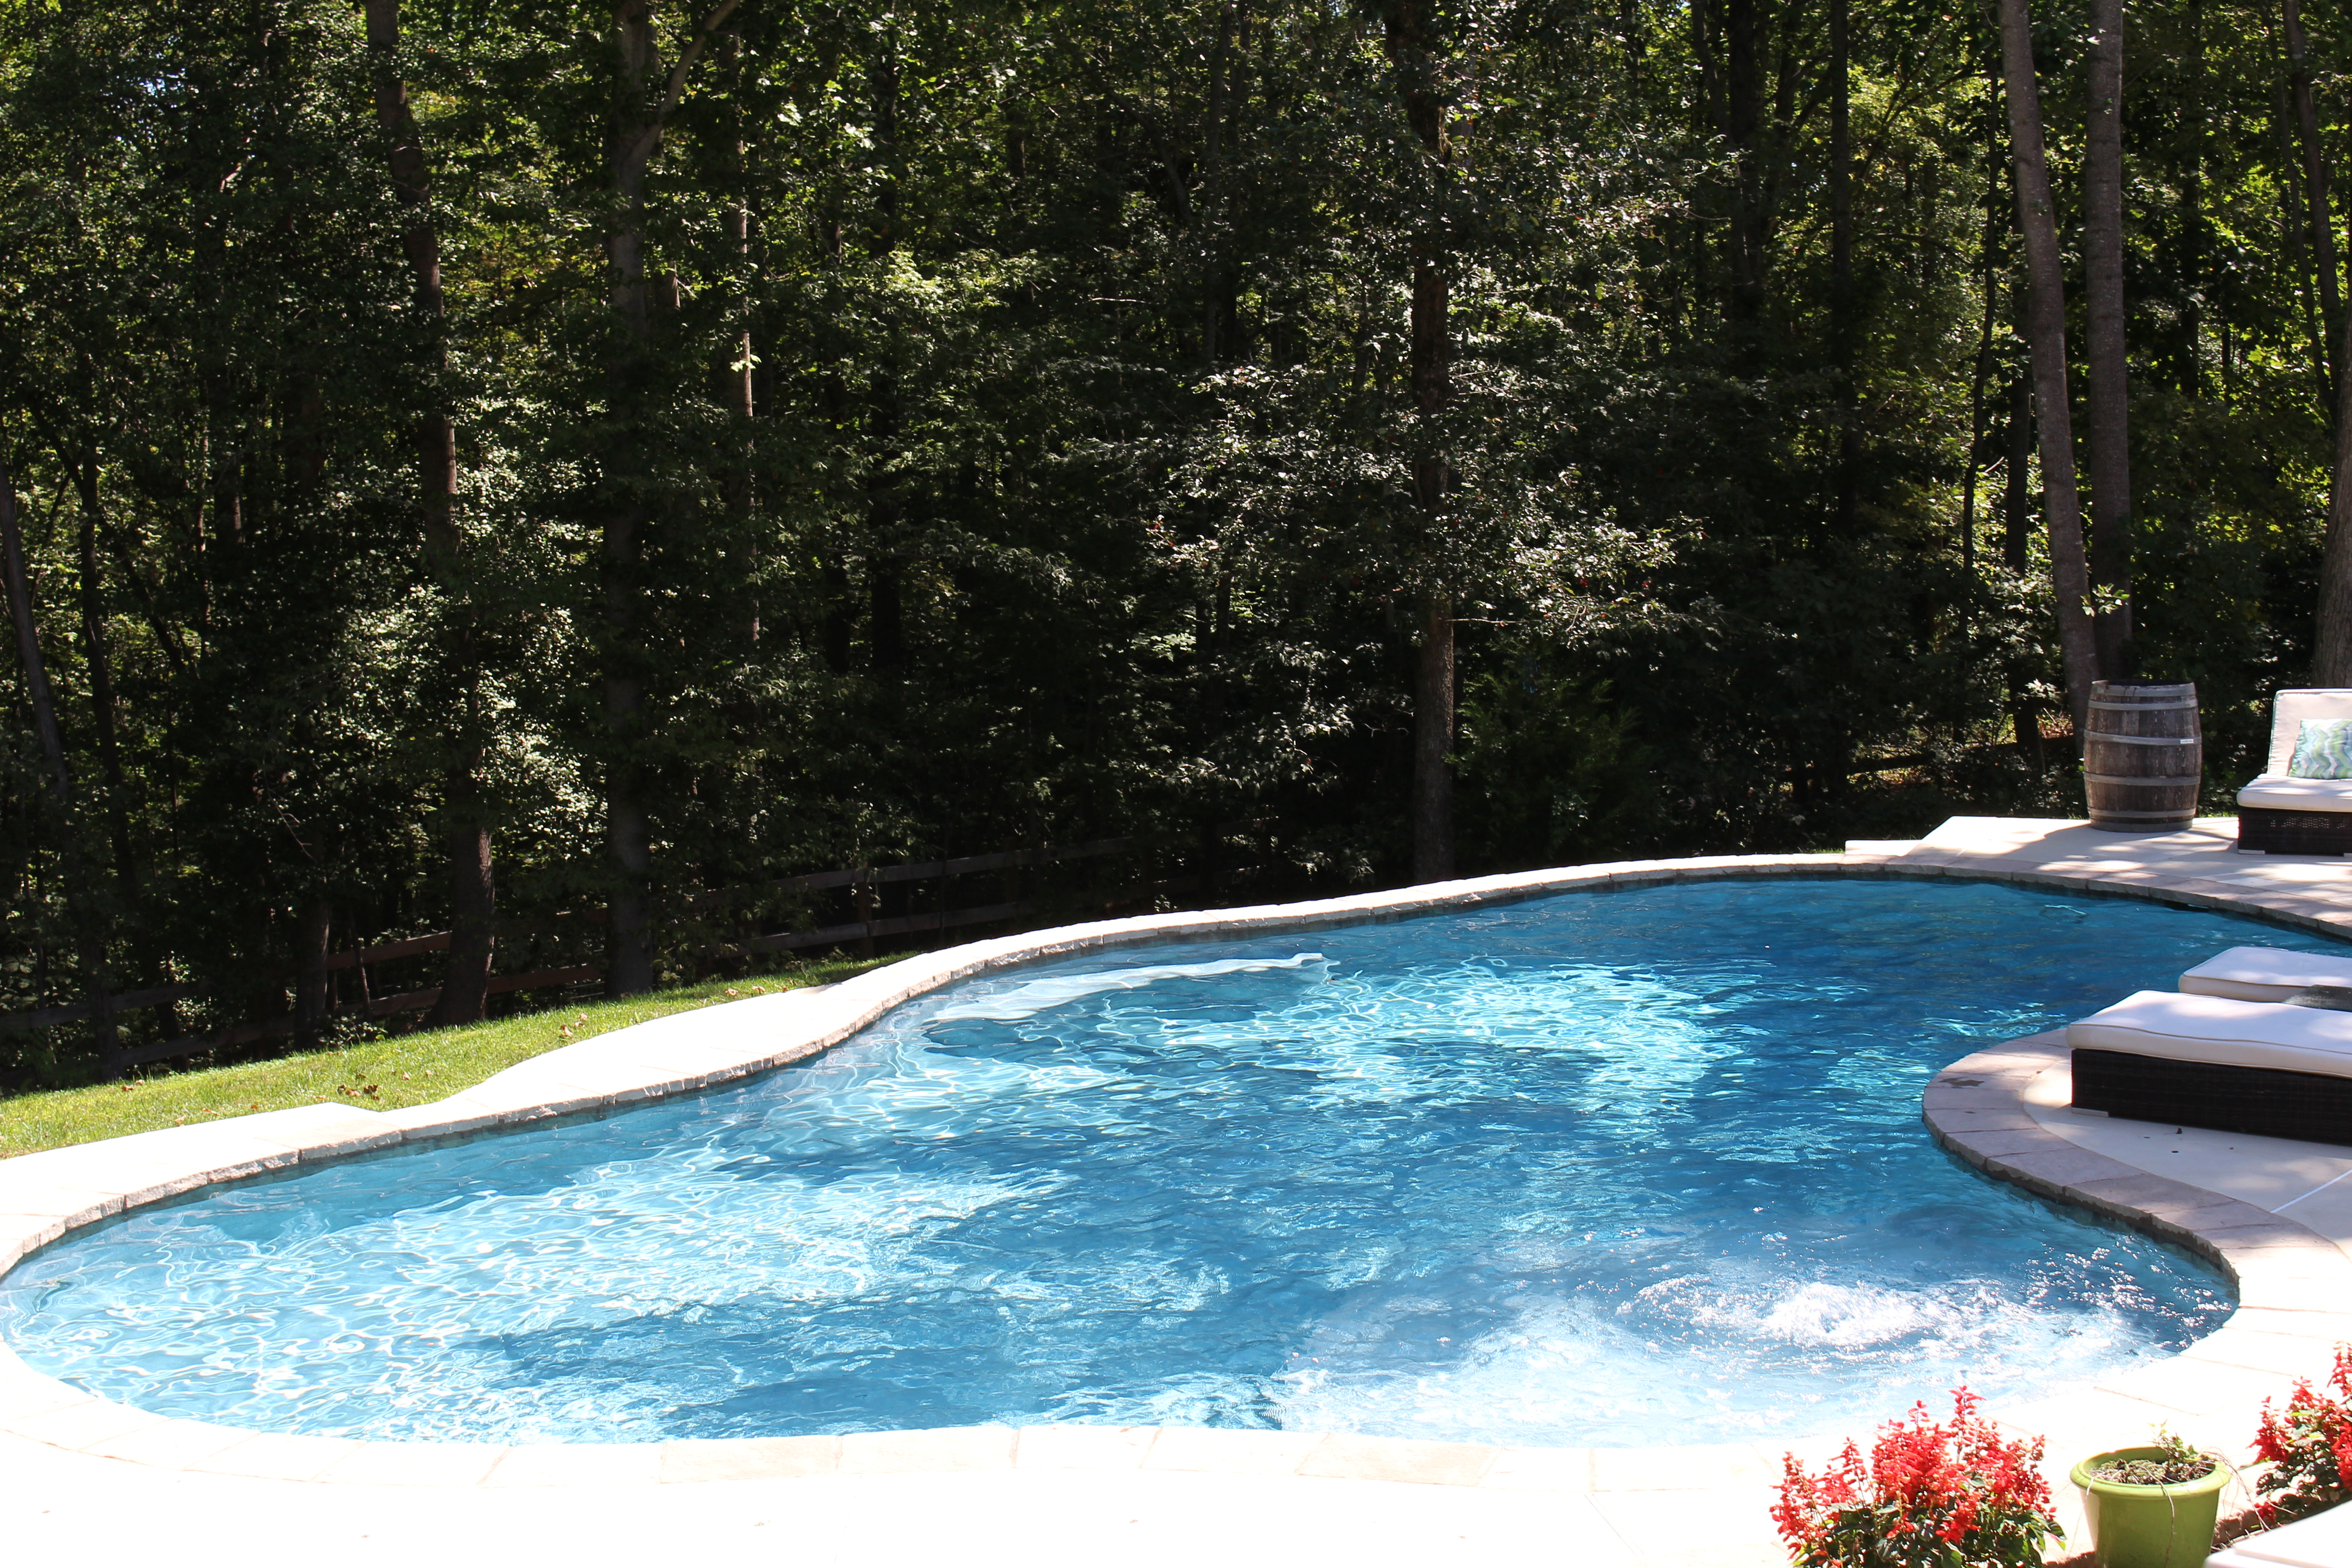 Freeform Swimming Pool Project The Pool Company Construction